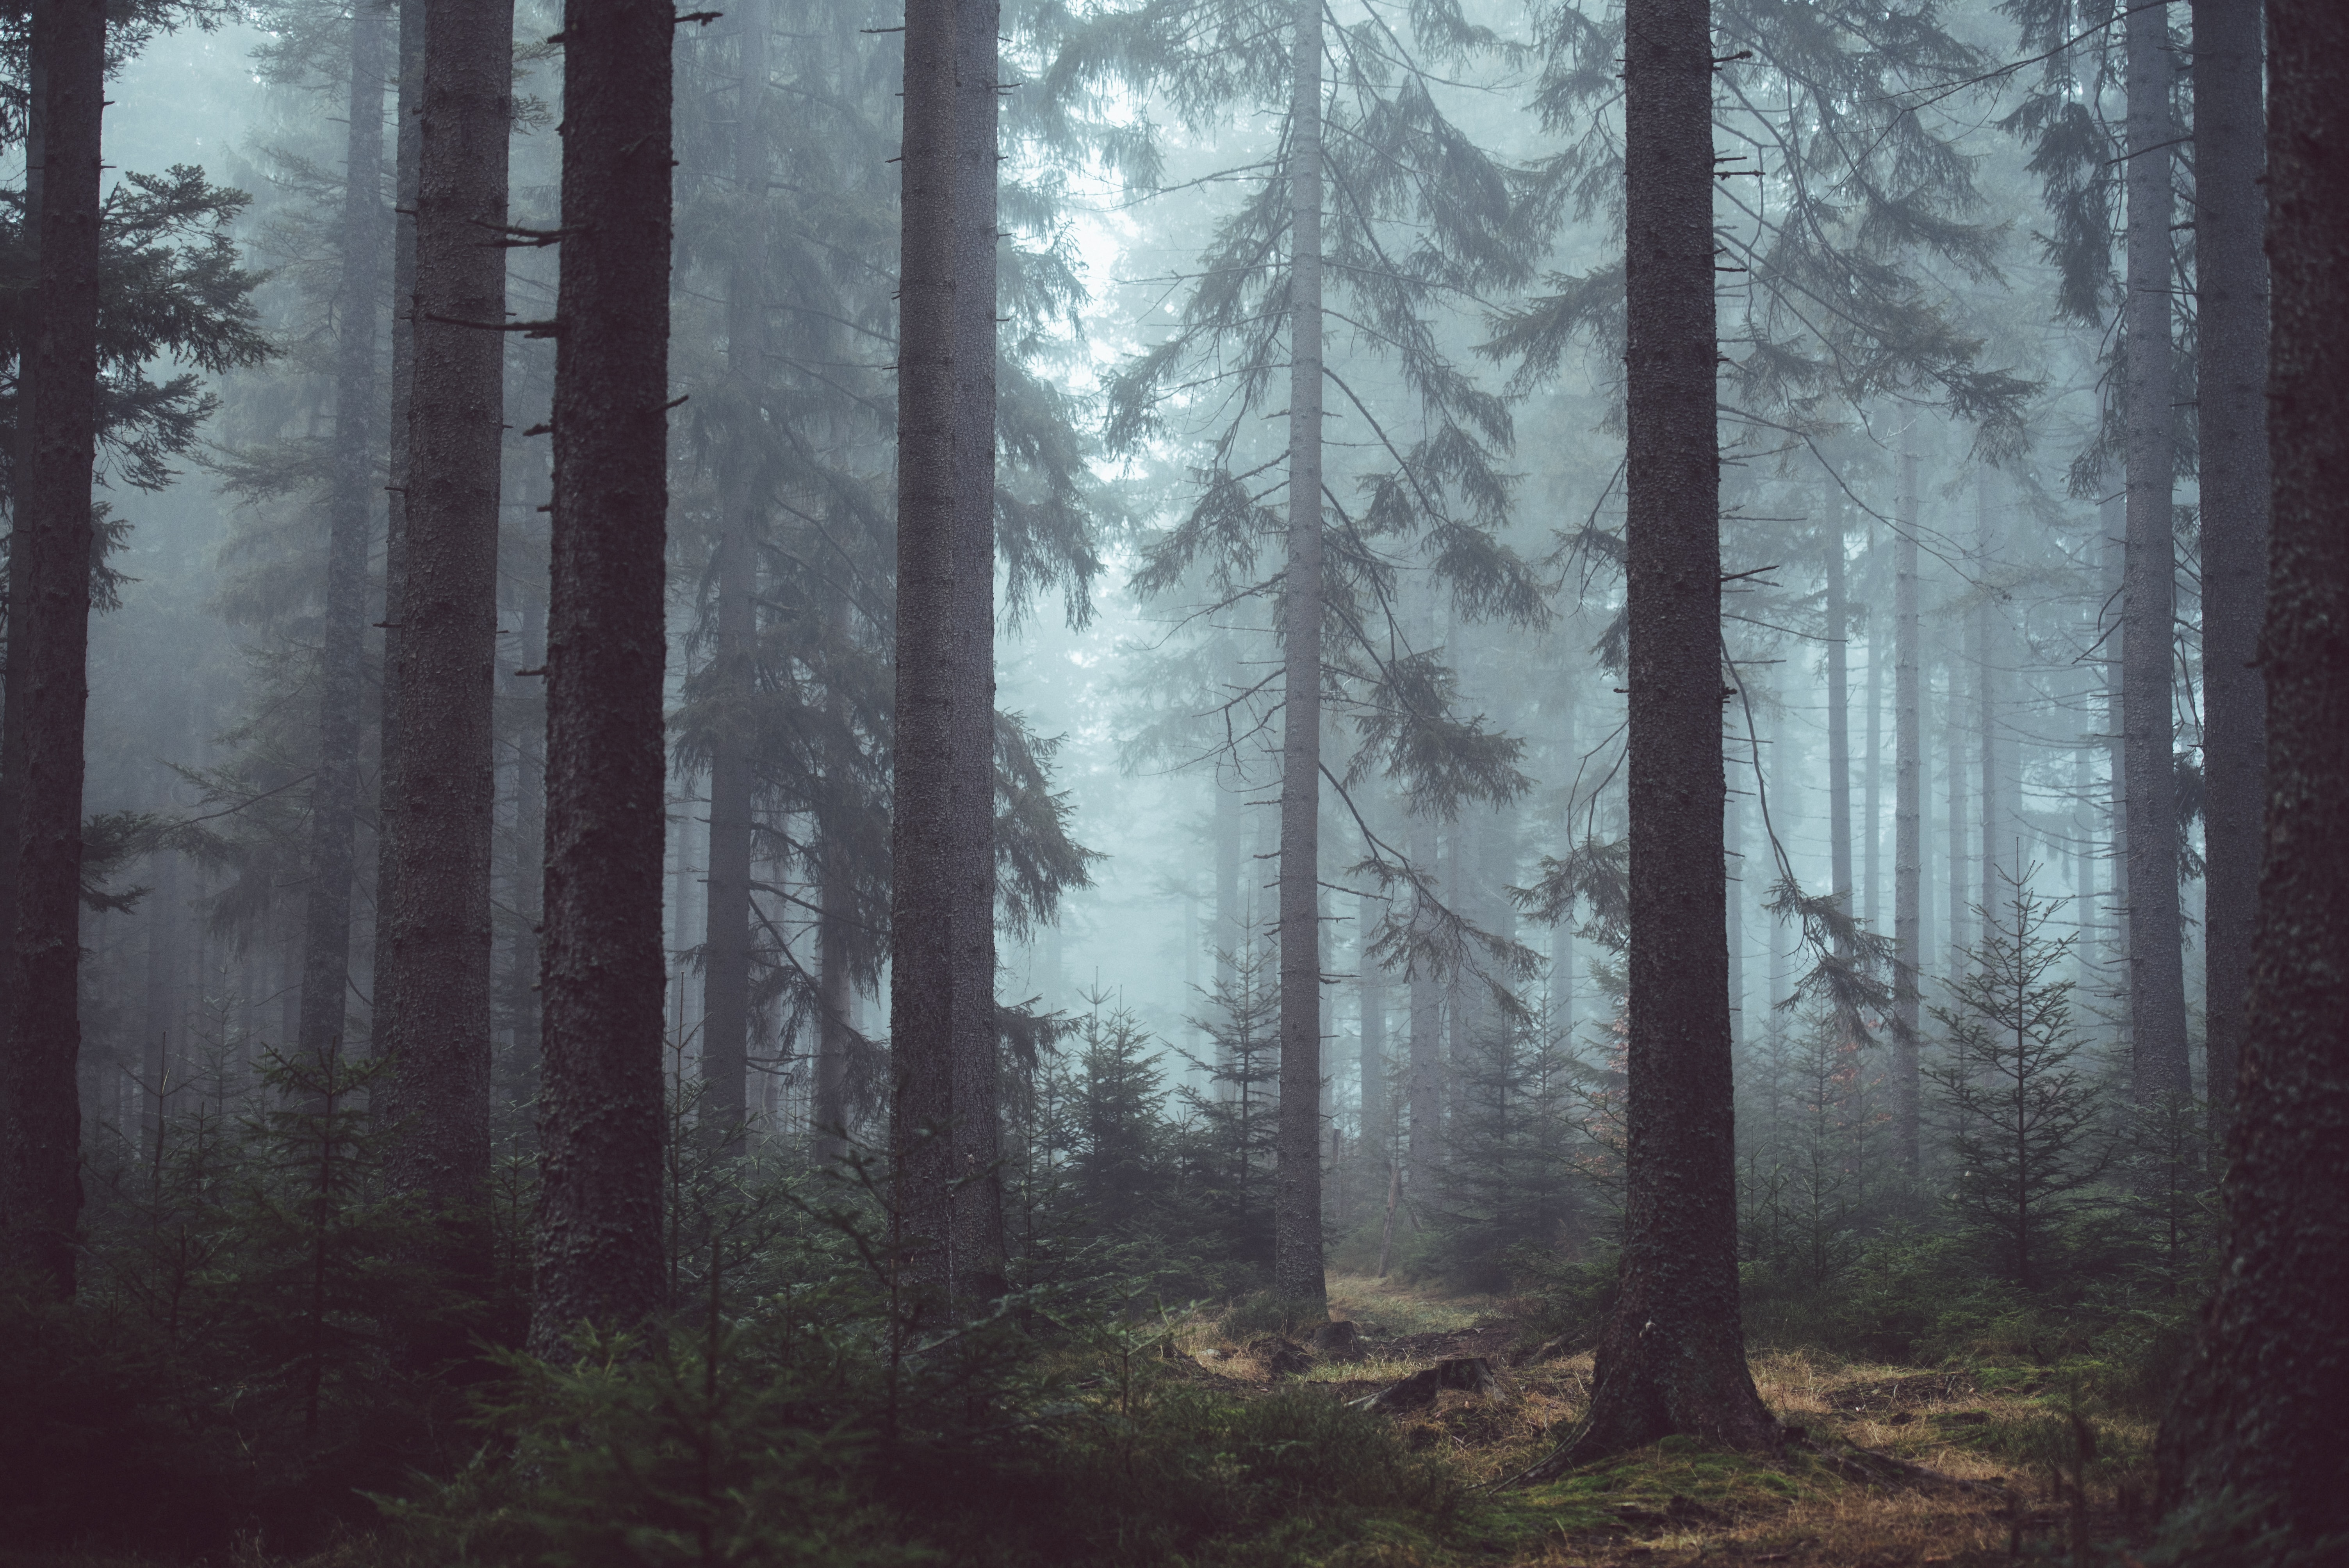 forest surrounded by fog during daytime